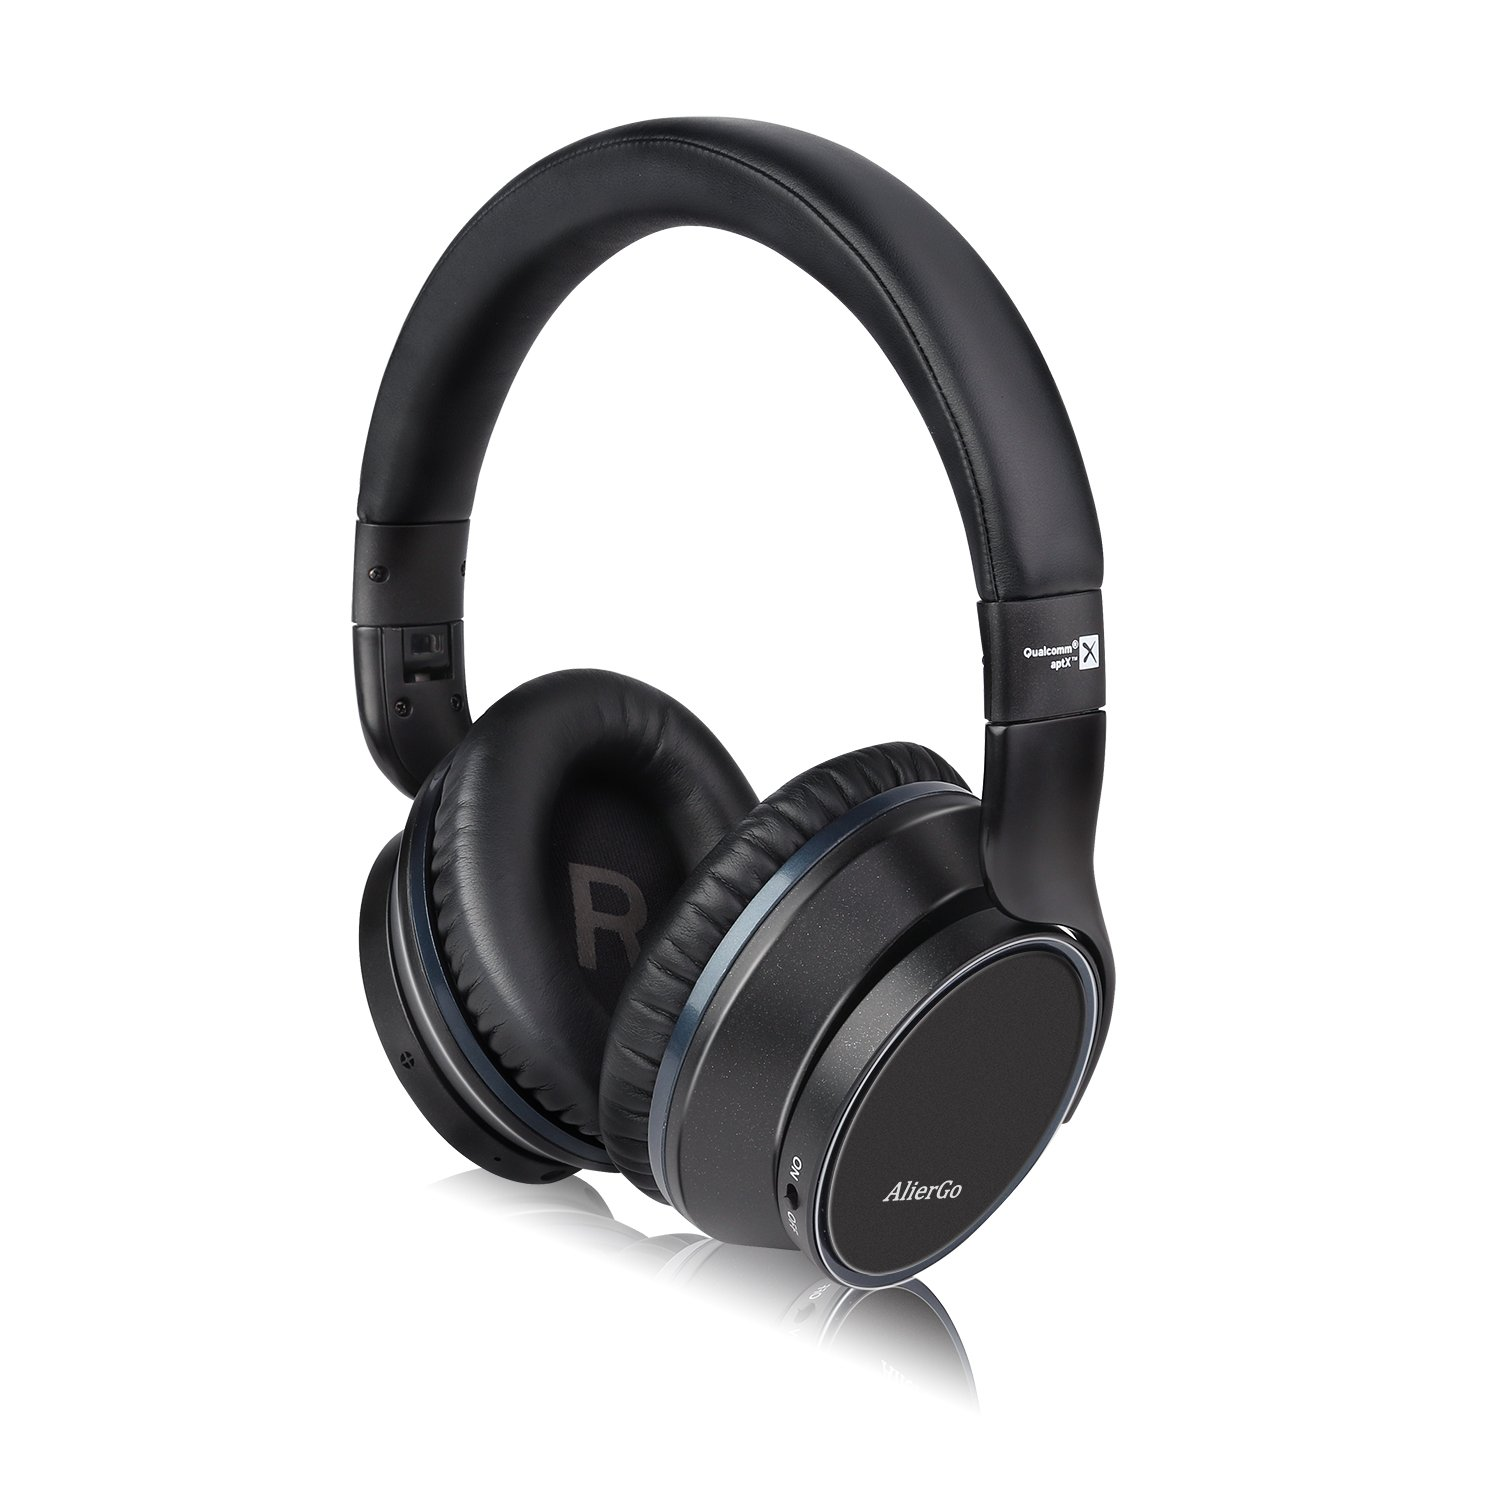 AlierGo SoundOn ANC Wireless Headphones,Active Noise Cancelling(ANC) Wireless Stereo Over Ear Headsets with aptX Hi-Fi Deep Bass Sound for Smartphones/TV/Laptop/Tablet(Dual 40mm Drivers,Built-in MICR